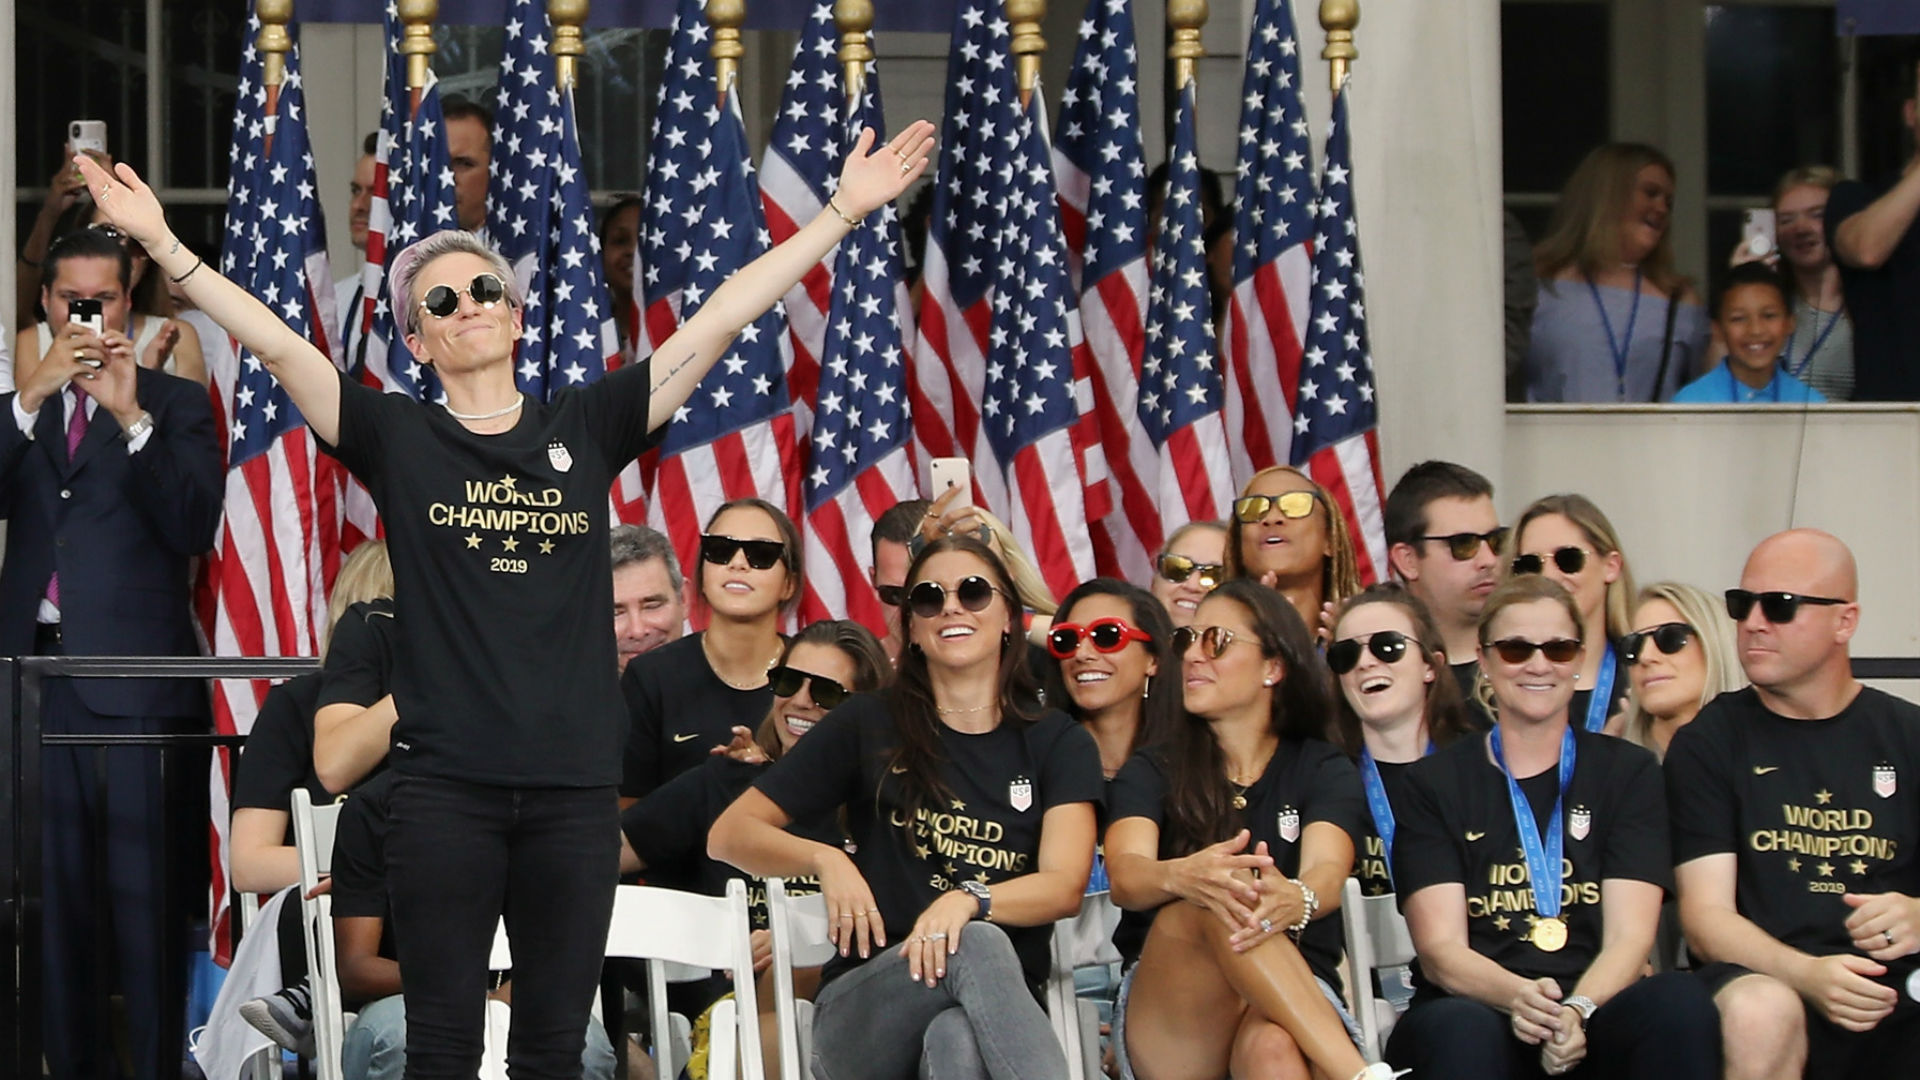 Hall of Famer Julie Foudy: 'Equal pay' fight by Megan Rapinoe, USWNT about so much more